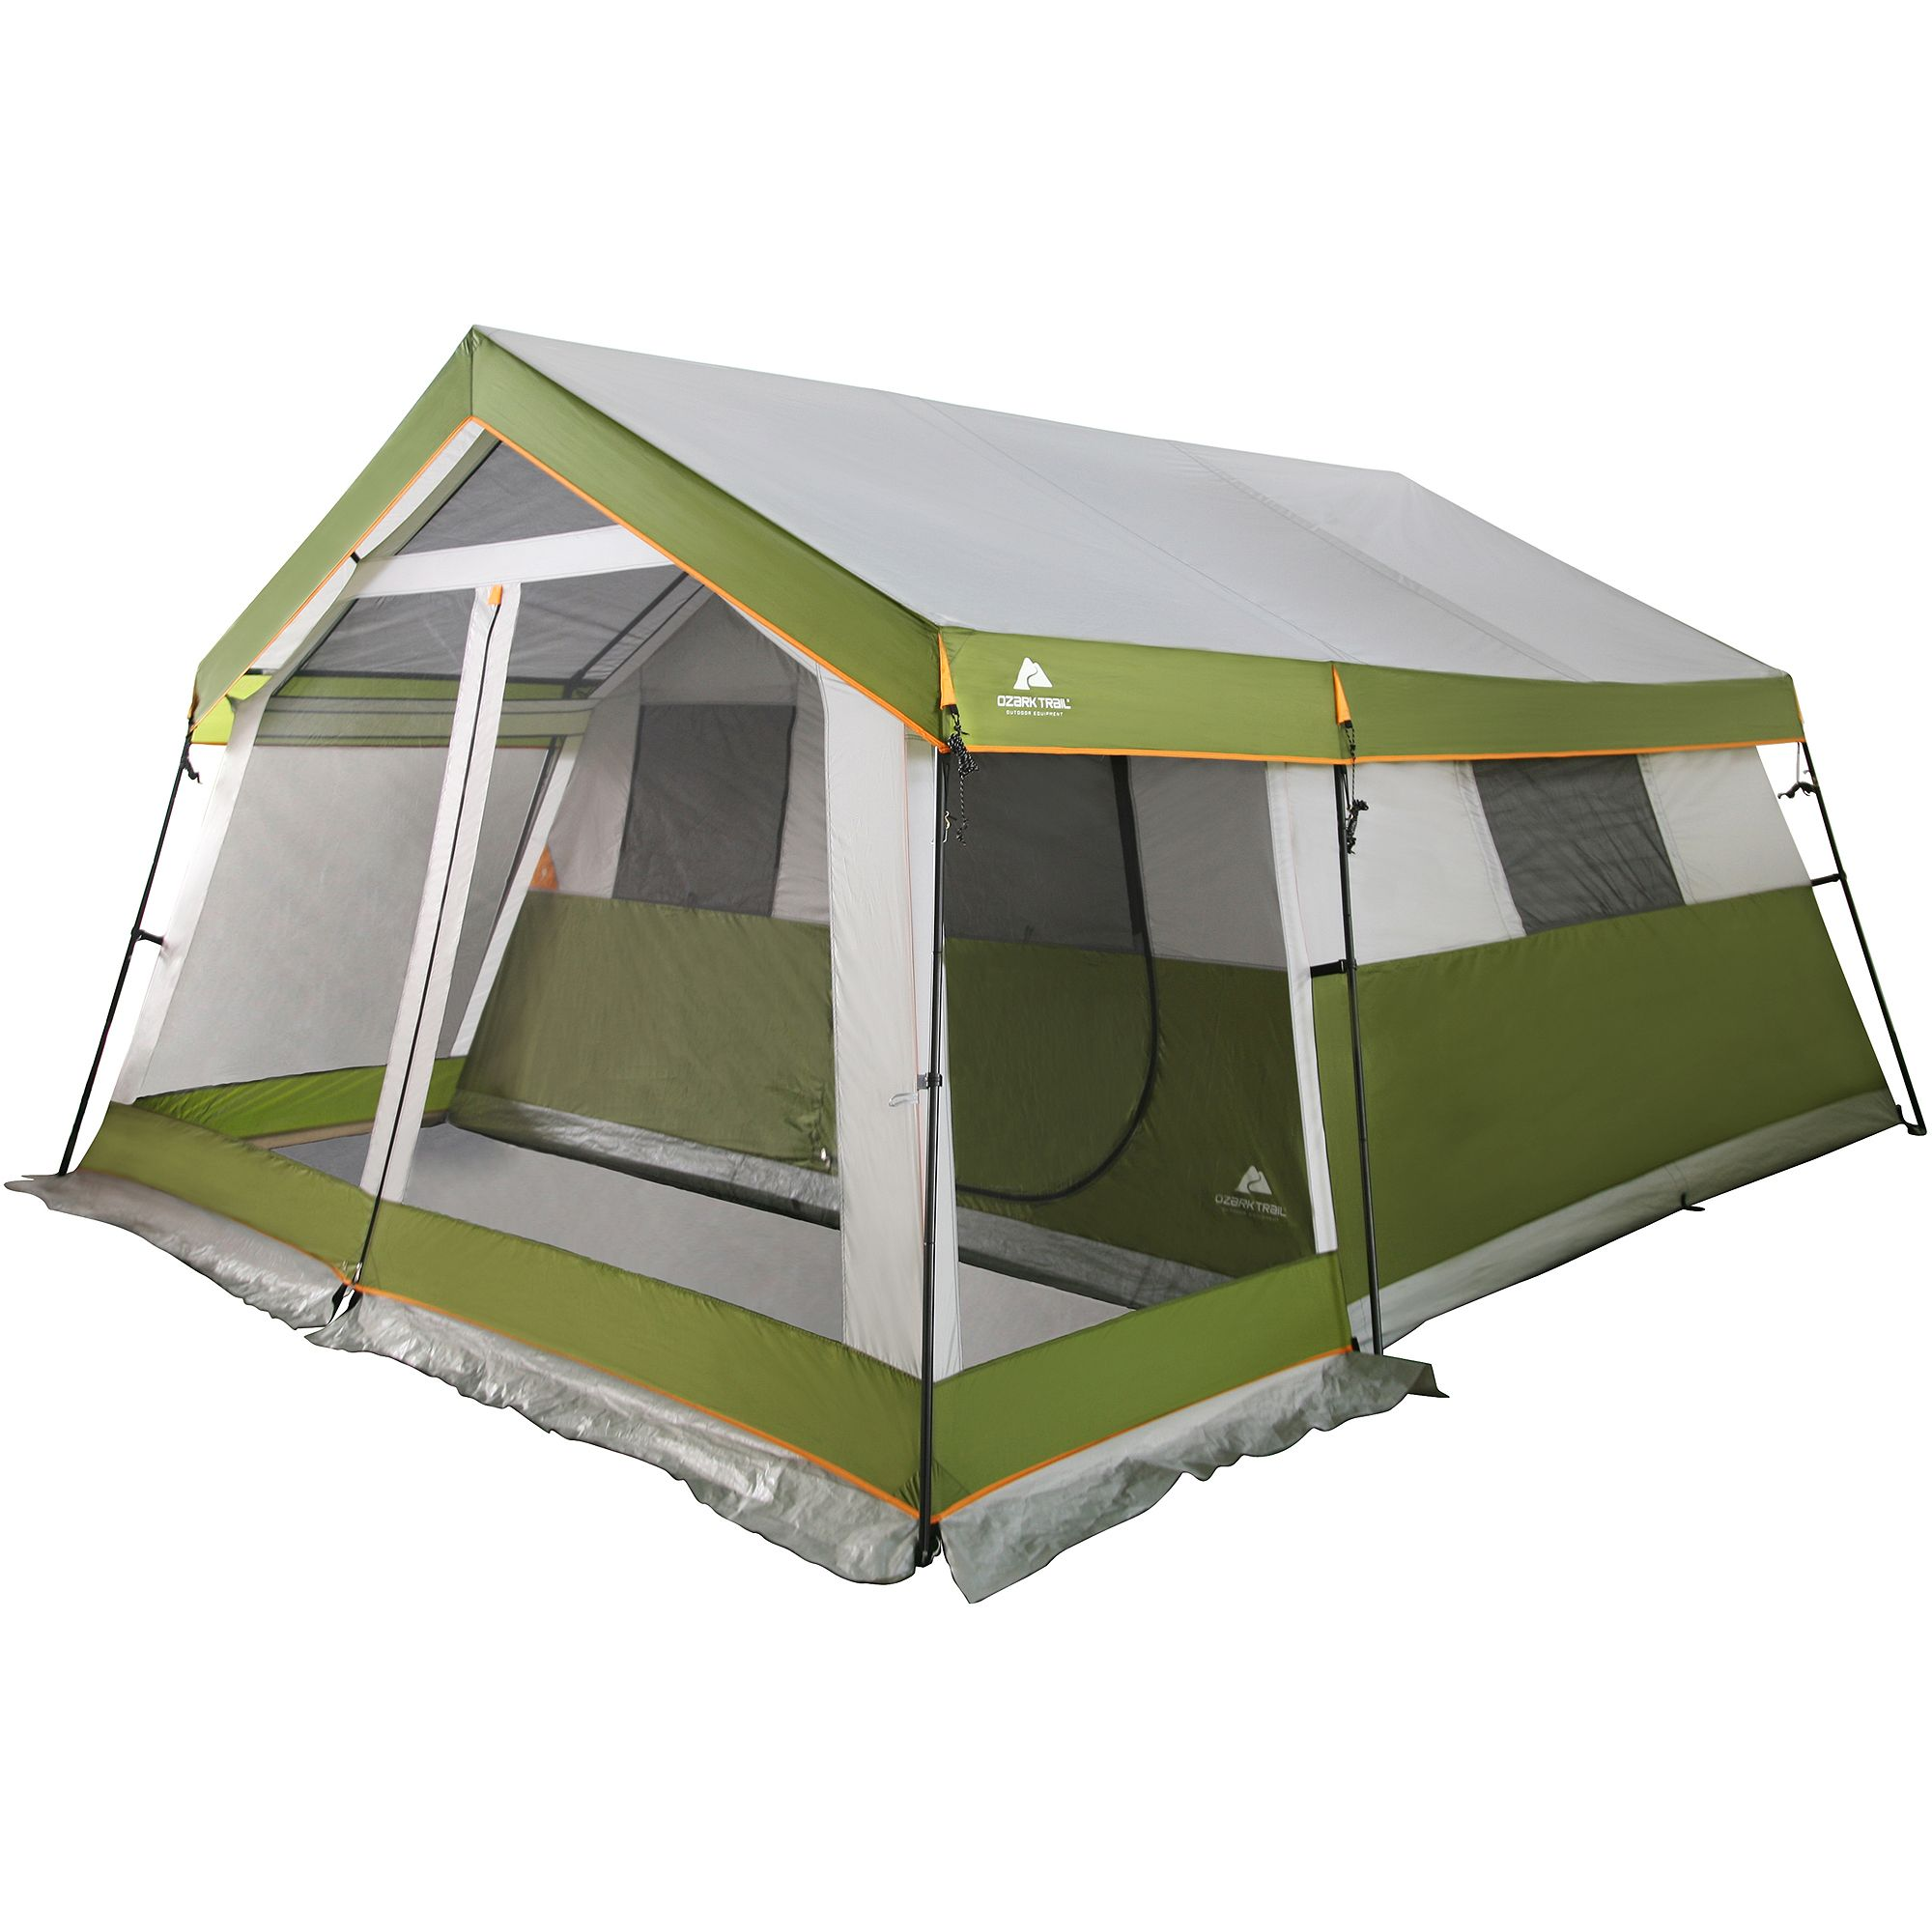 Ozark Trail 8-Person Family Cabin Tent with Screen Porch - Walmart.com  sc 1 st  Pinterest & Ozark Trail 8-Person Family Cabin Tent with Screen Porch - Walmart ...